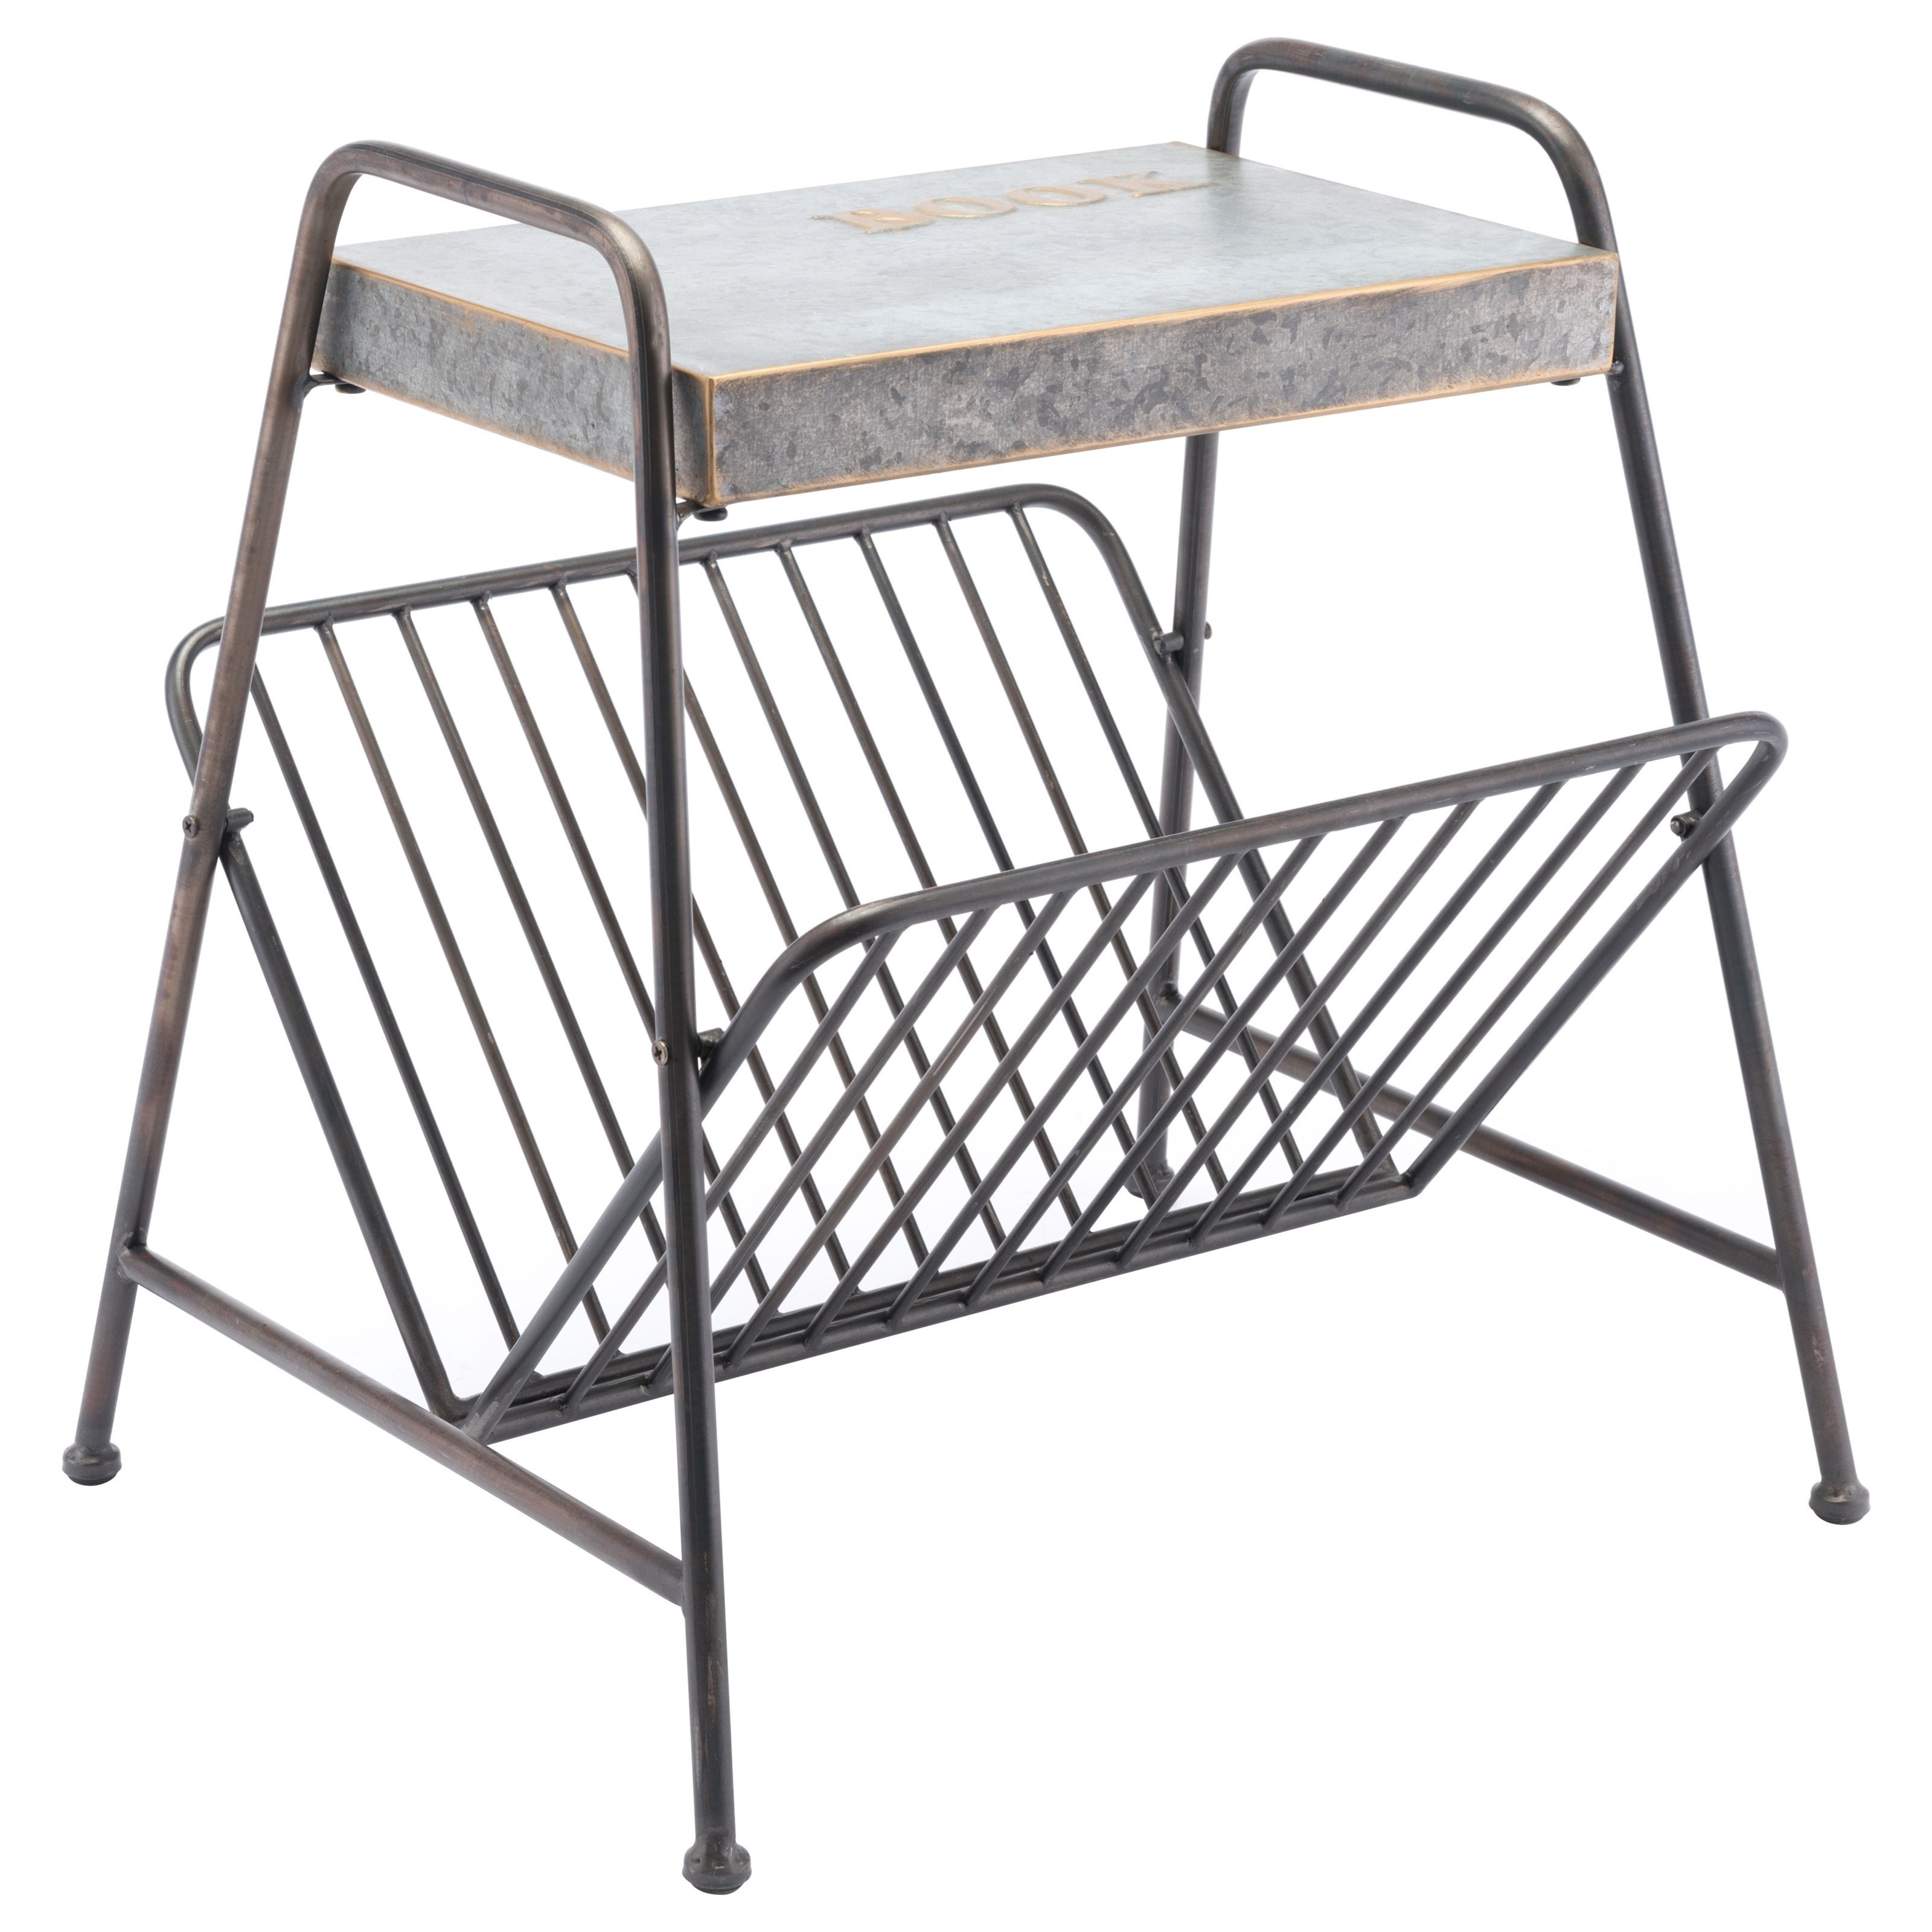 Zuo Accent Tables Metal Magazine Rack - Item Number: A10708